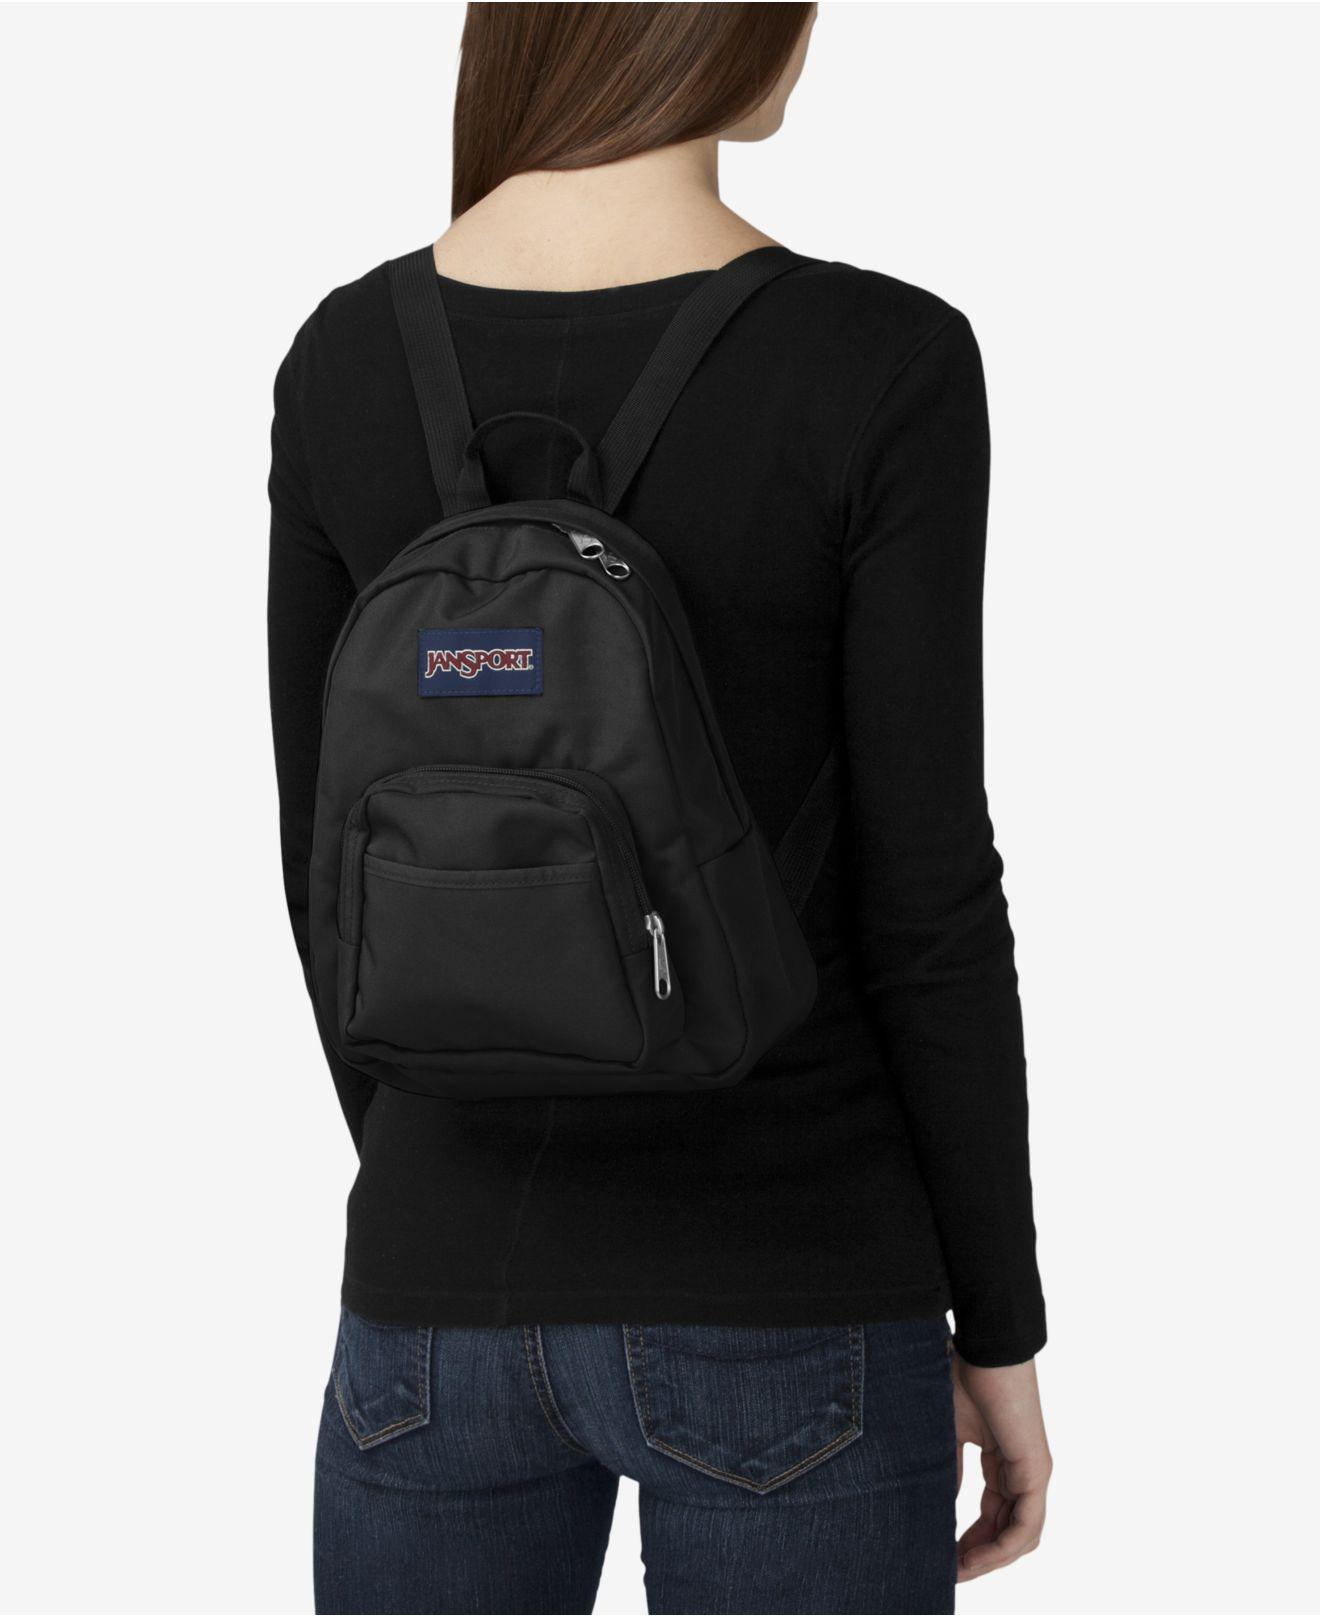 c81ab58ab4ab Jansport Half Pint Small Backpack- Fenix Toulouse Handball